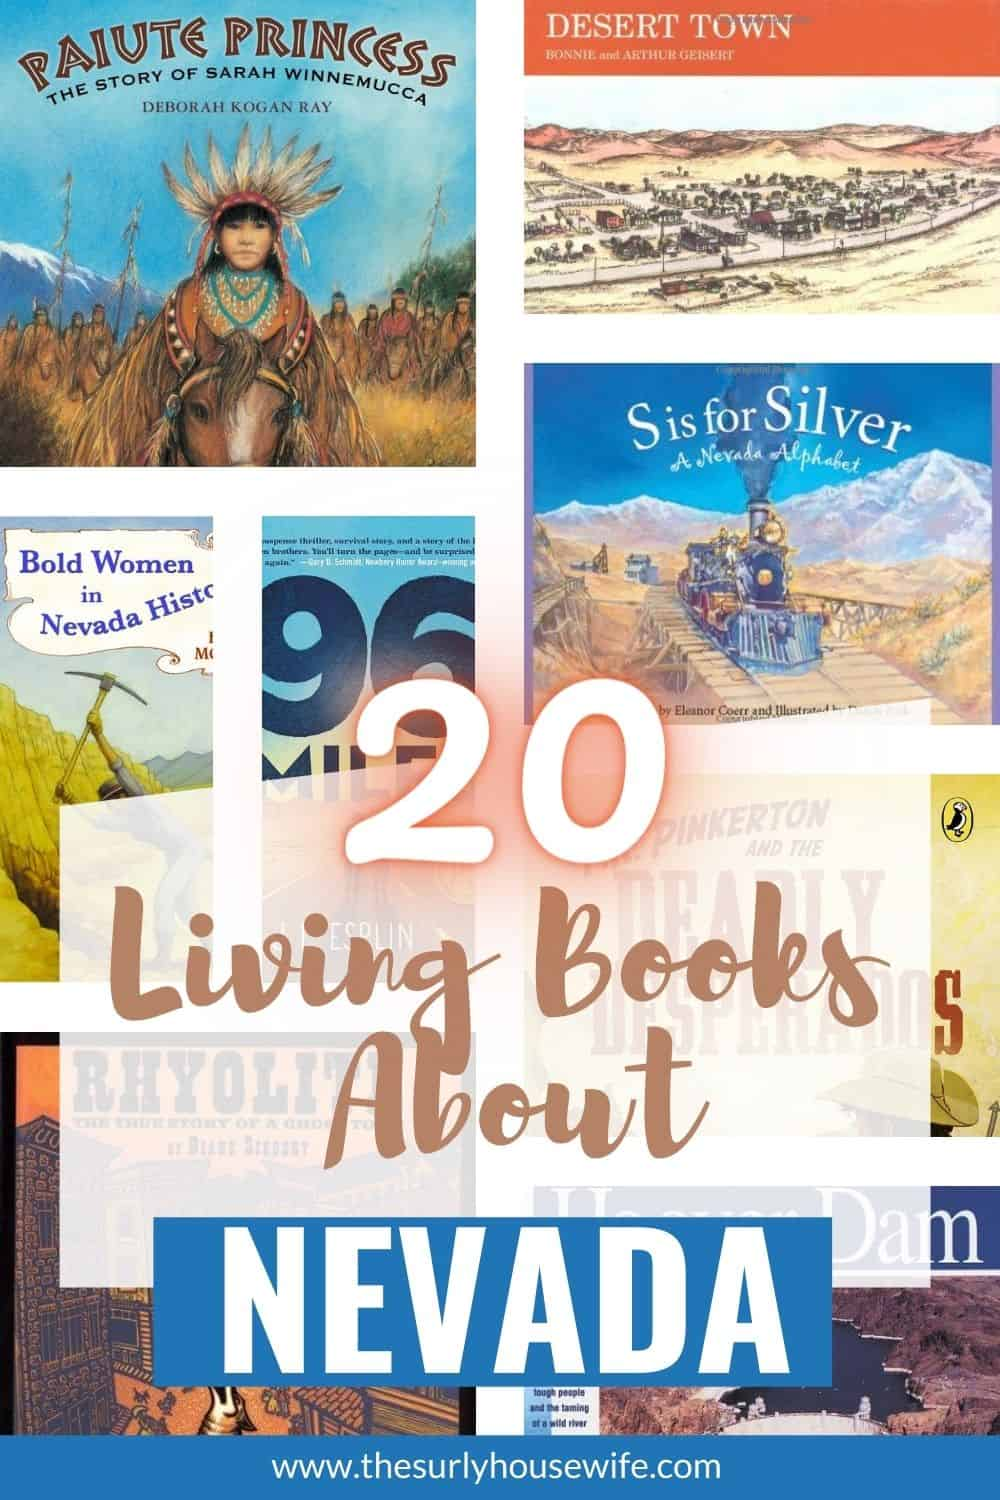 Searching for books about Nevadat? Check out this post picture books and chapter books all about or set in Nevada!